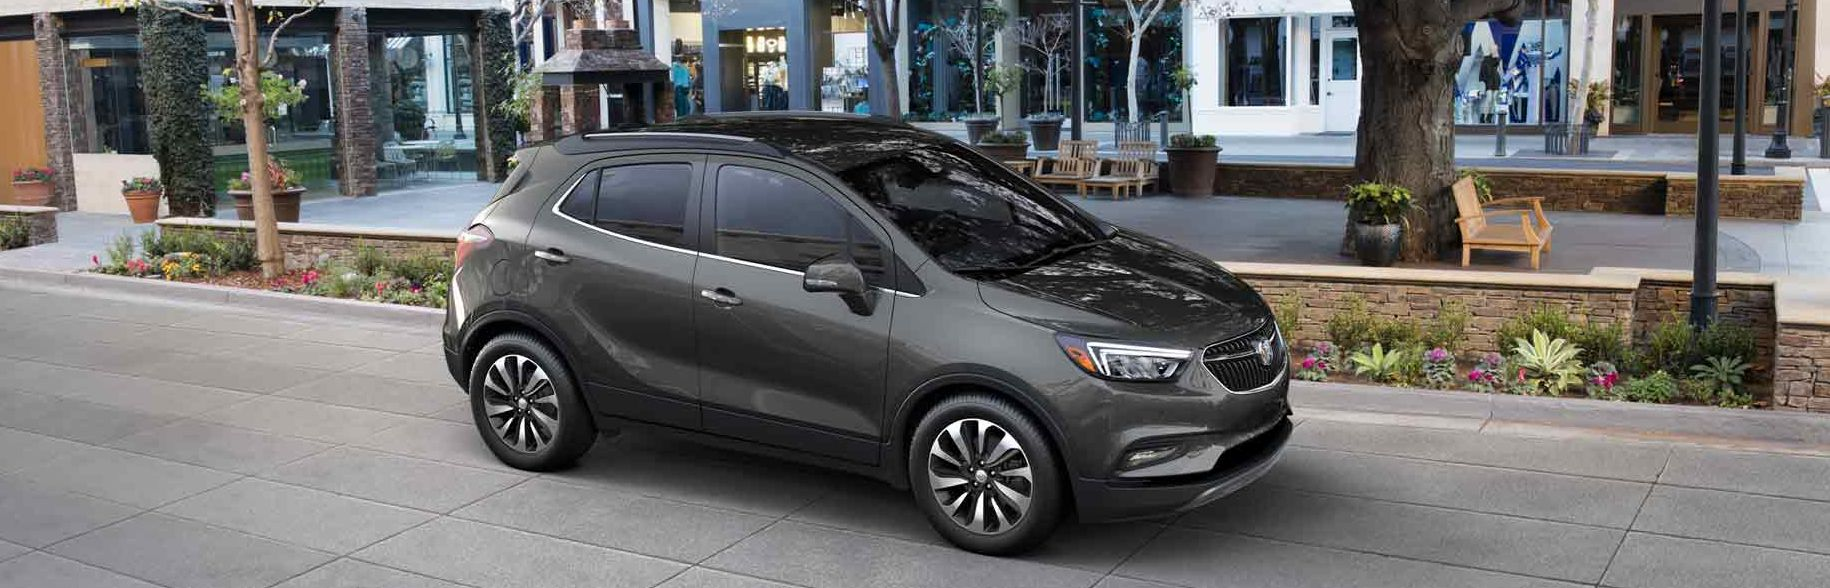 2017 Buick Encore for Sale near Canfield, OH